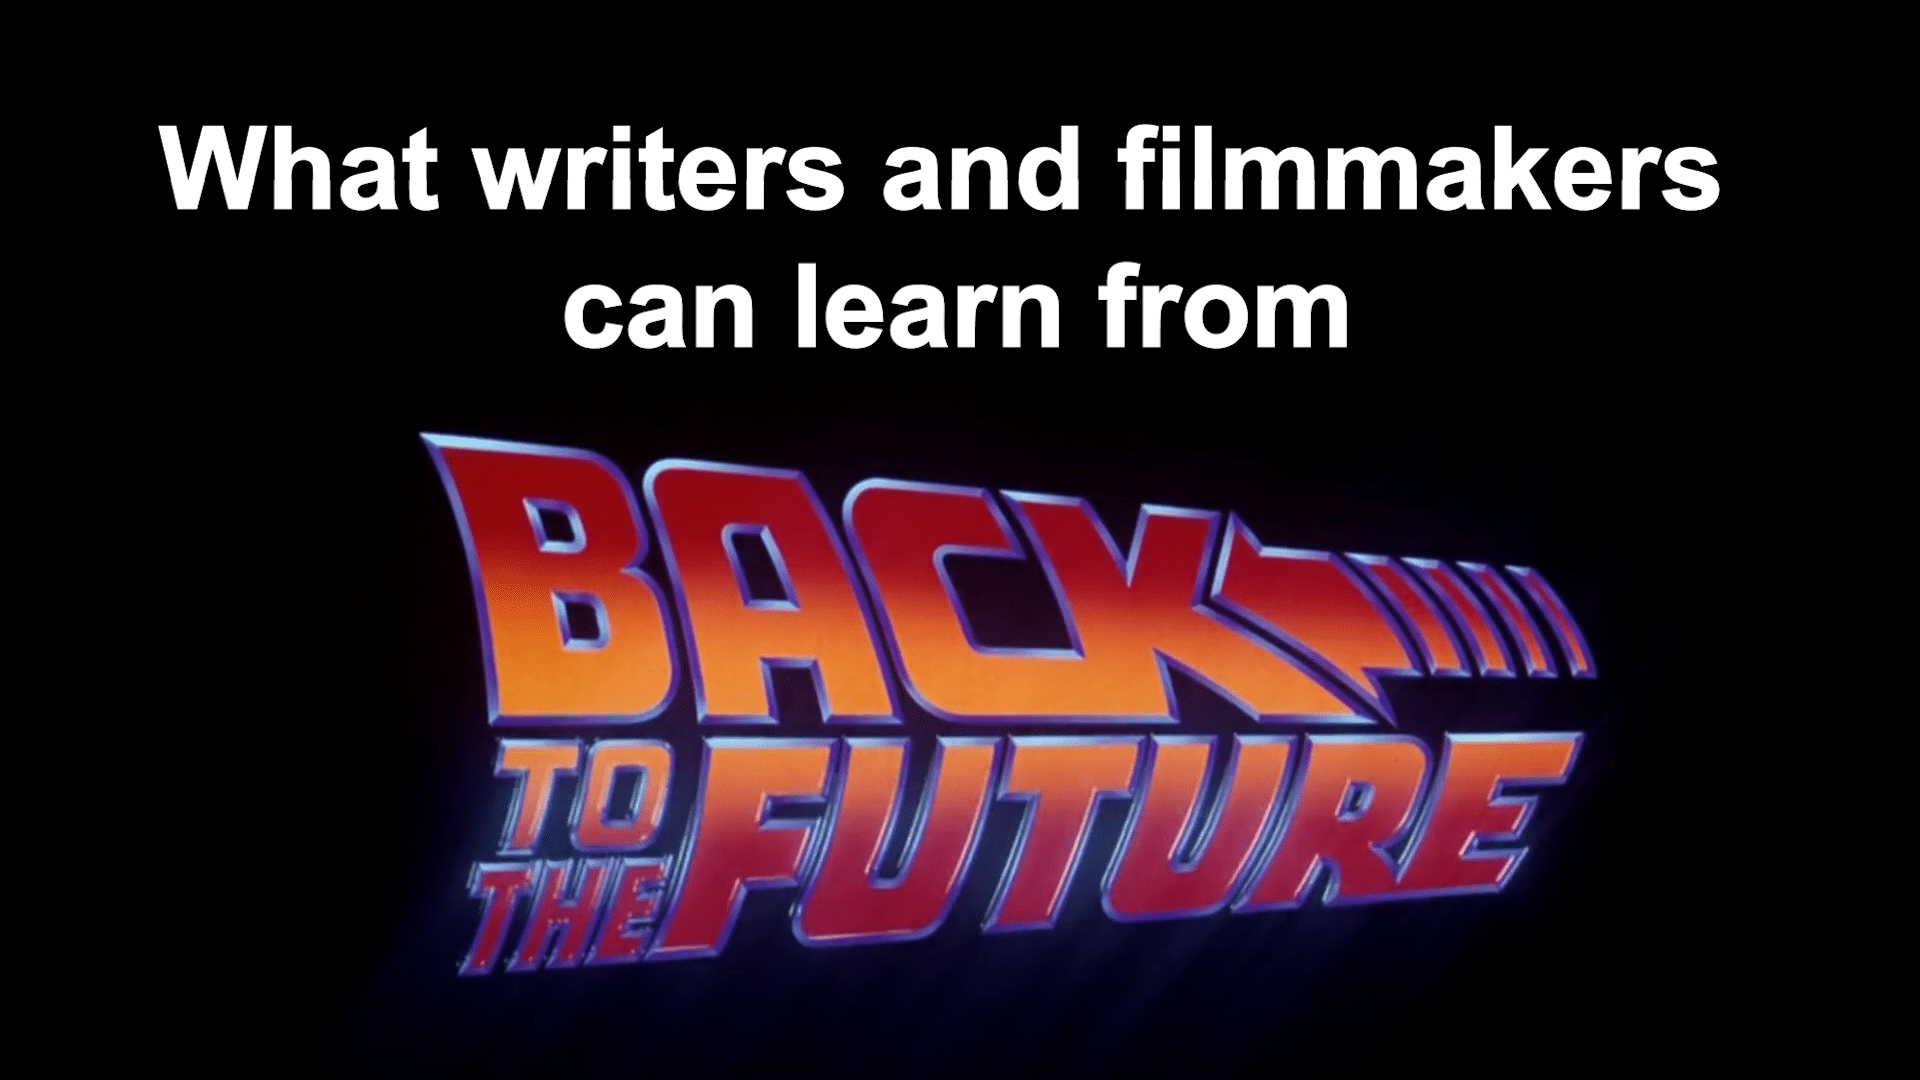 Back to the Future lessons